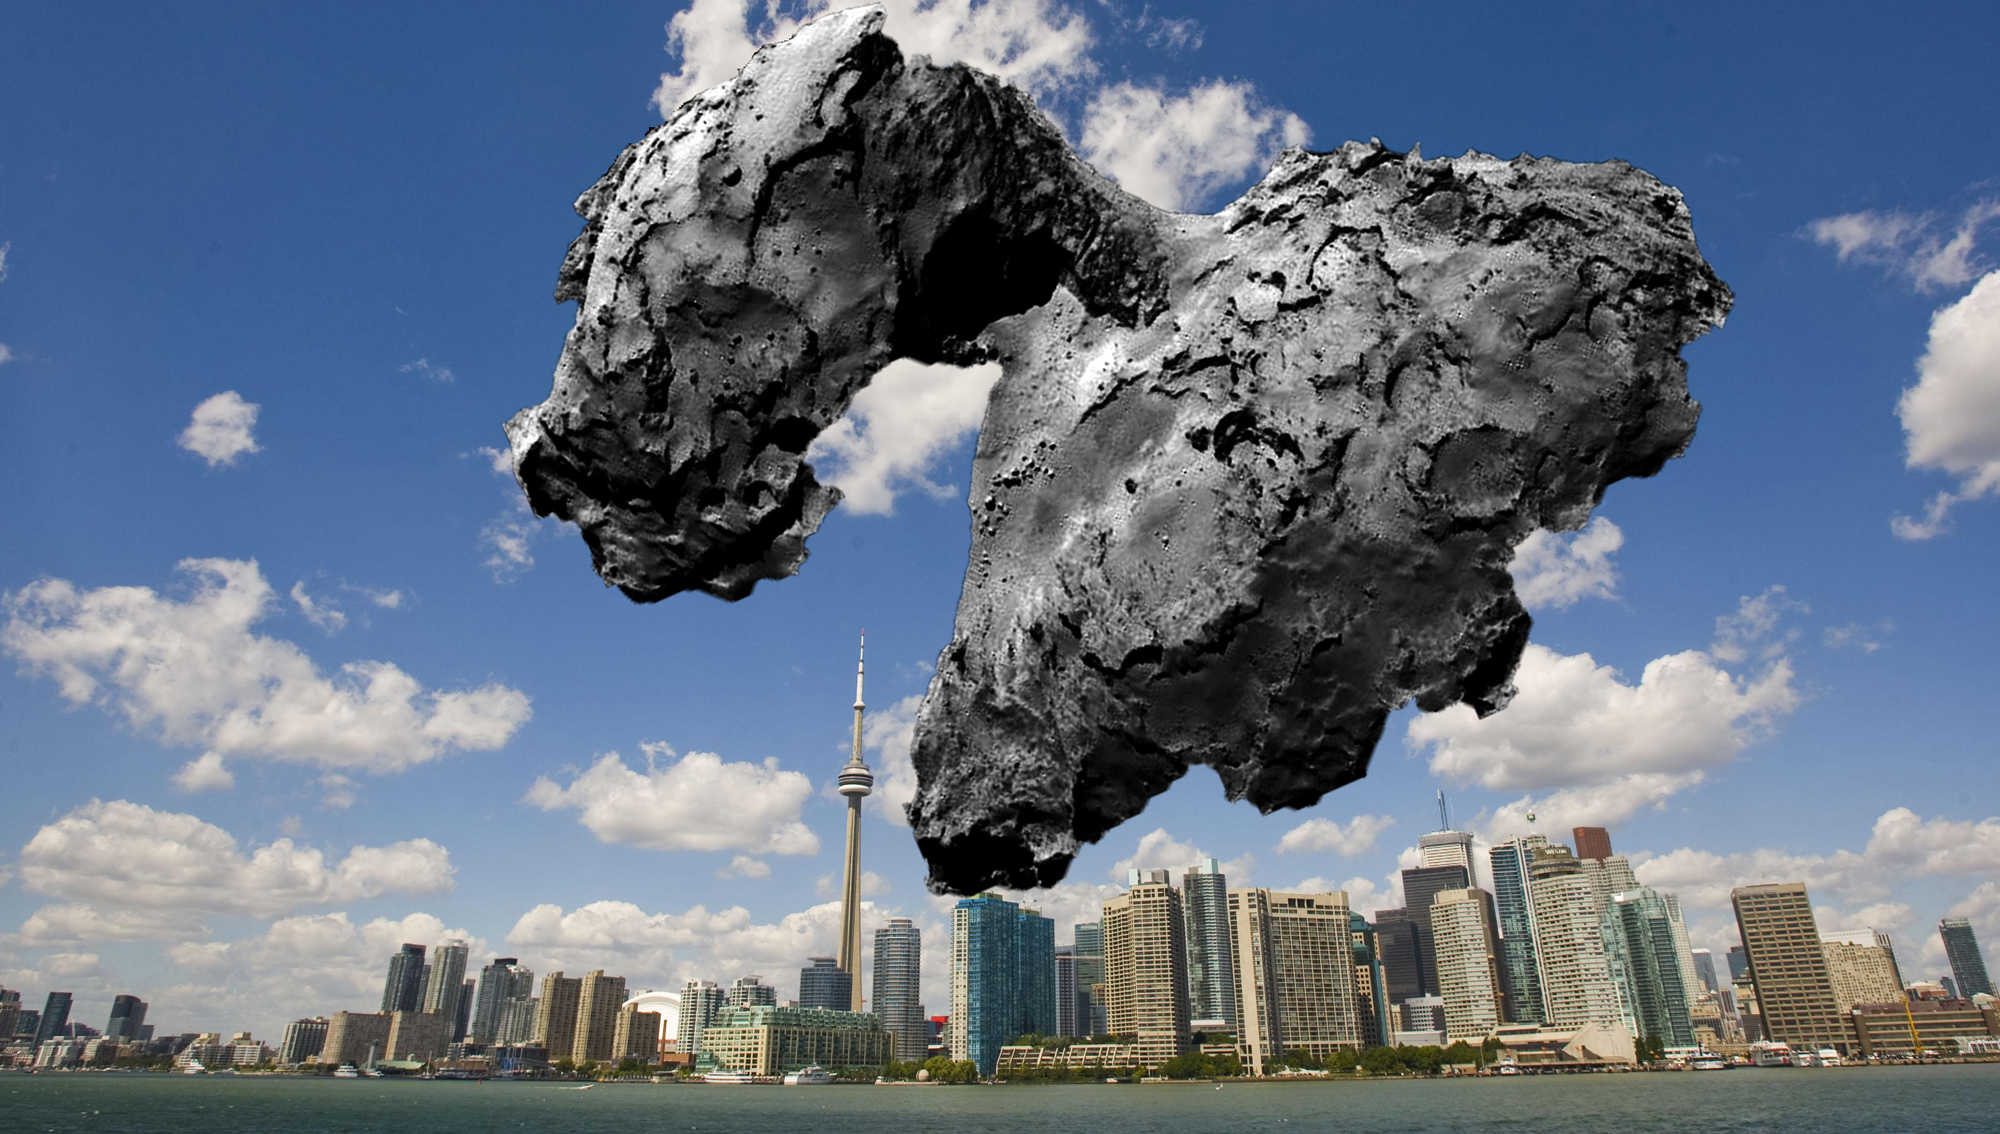 rosetta-data-shows-how-big-the-comet-really-is.jpg